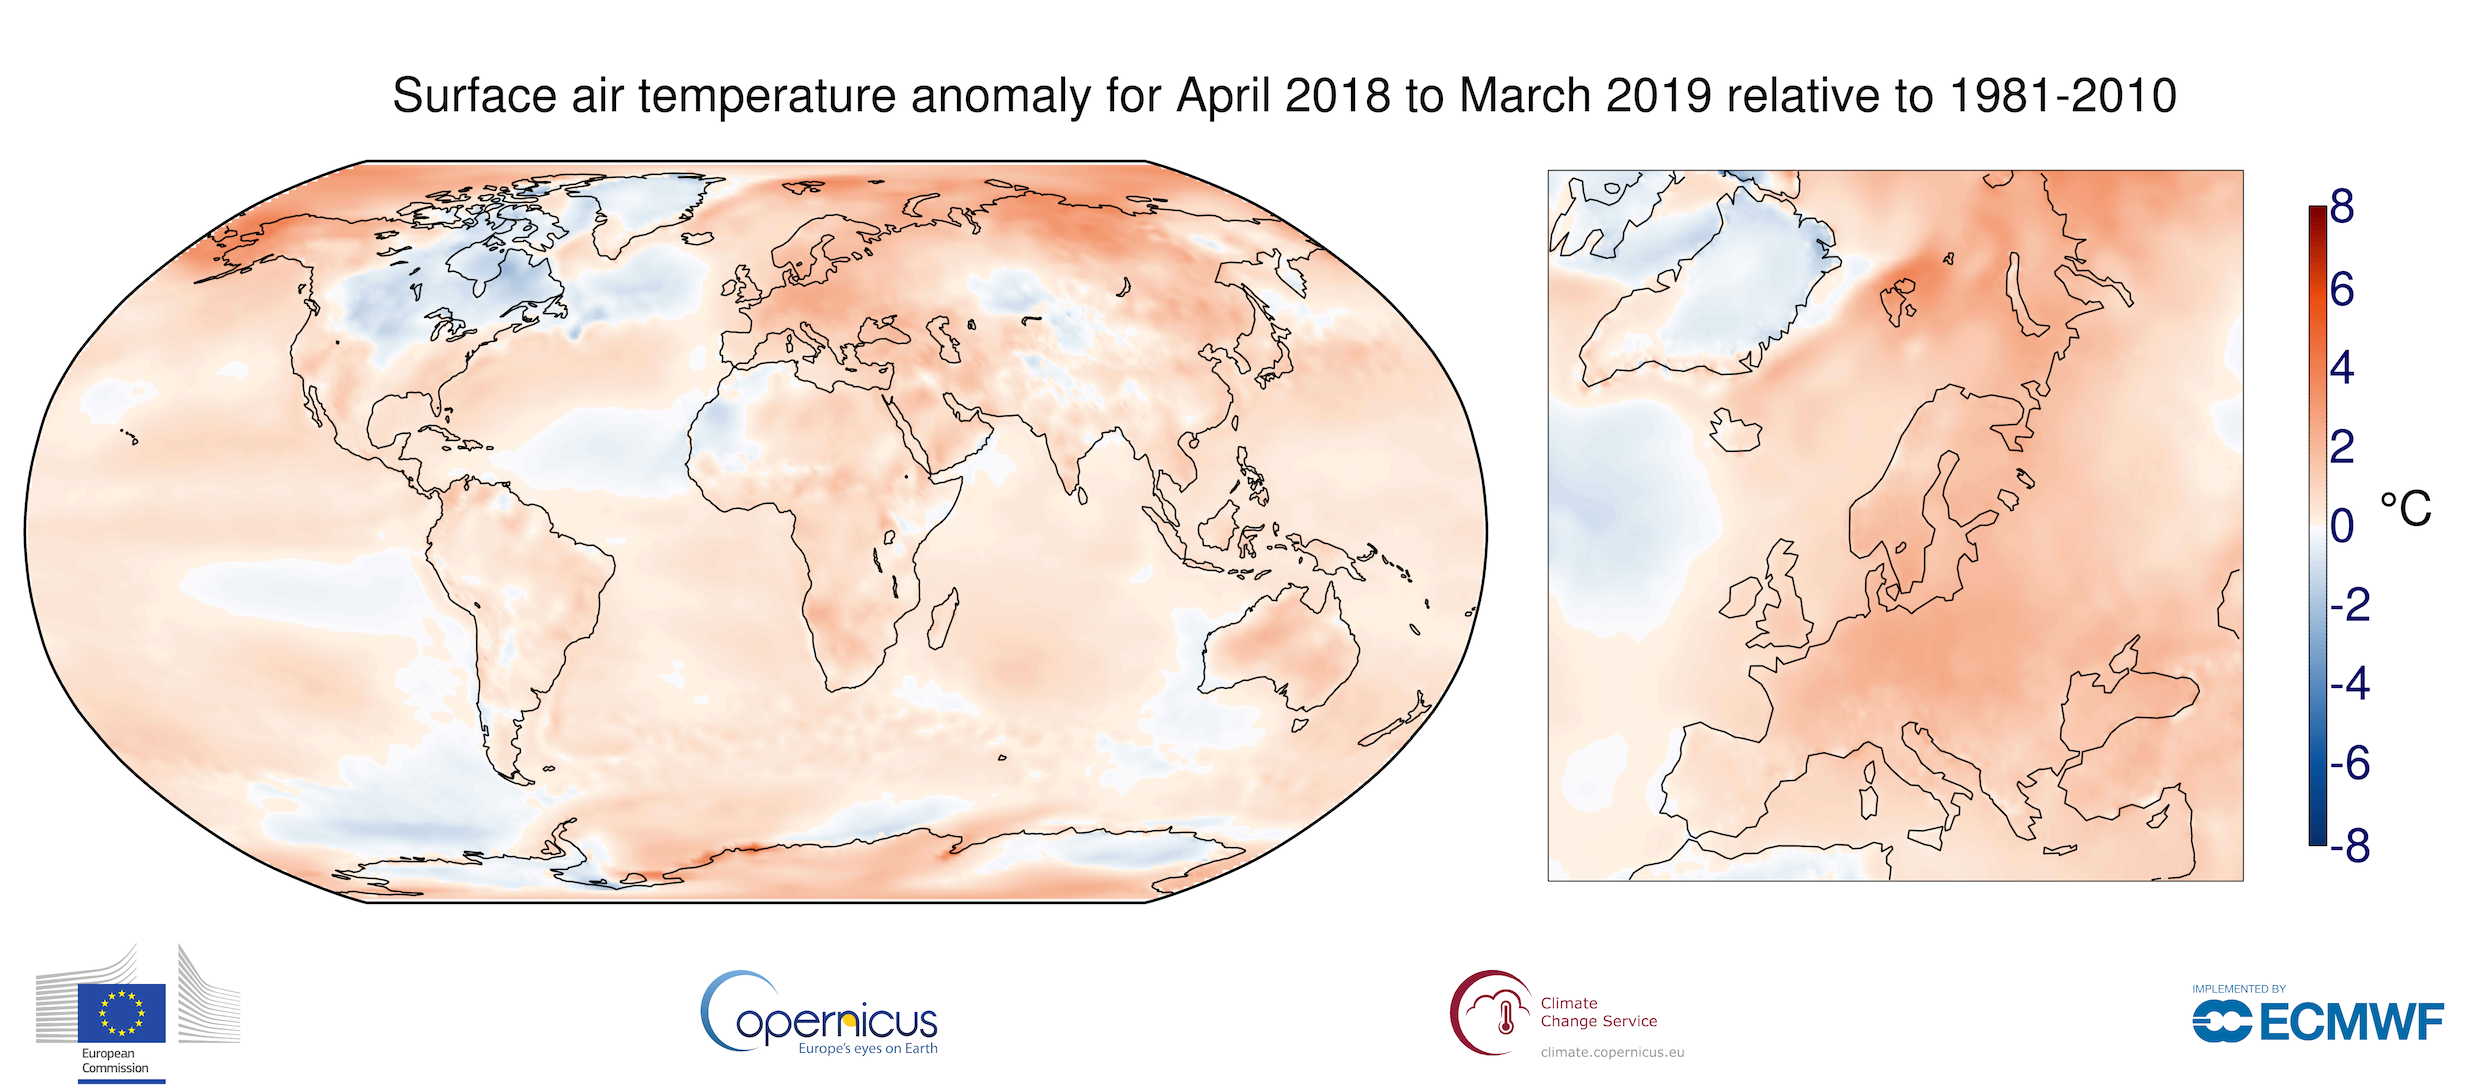 photo:ECMWF, Copernicus Climate Change Service;desc:Surface air temperature anomaly for April 2018 to March 2019 relative to the average for 1981-2010. Source: ERA-Interim.;